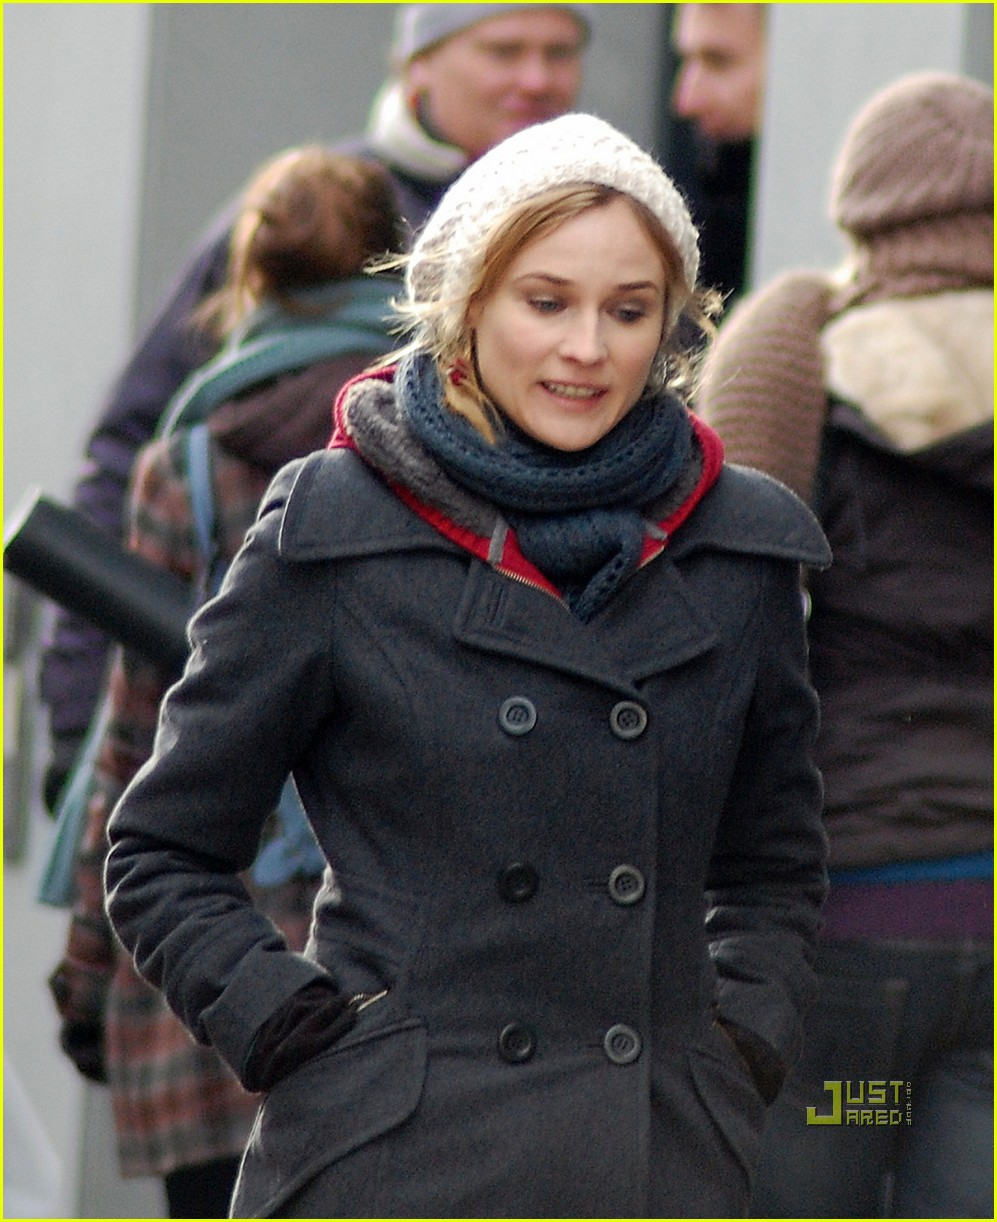 diane kruger unknown white male 01